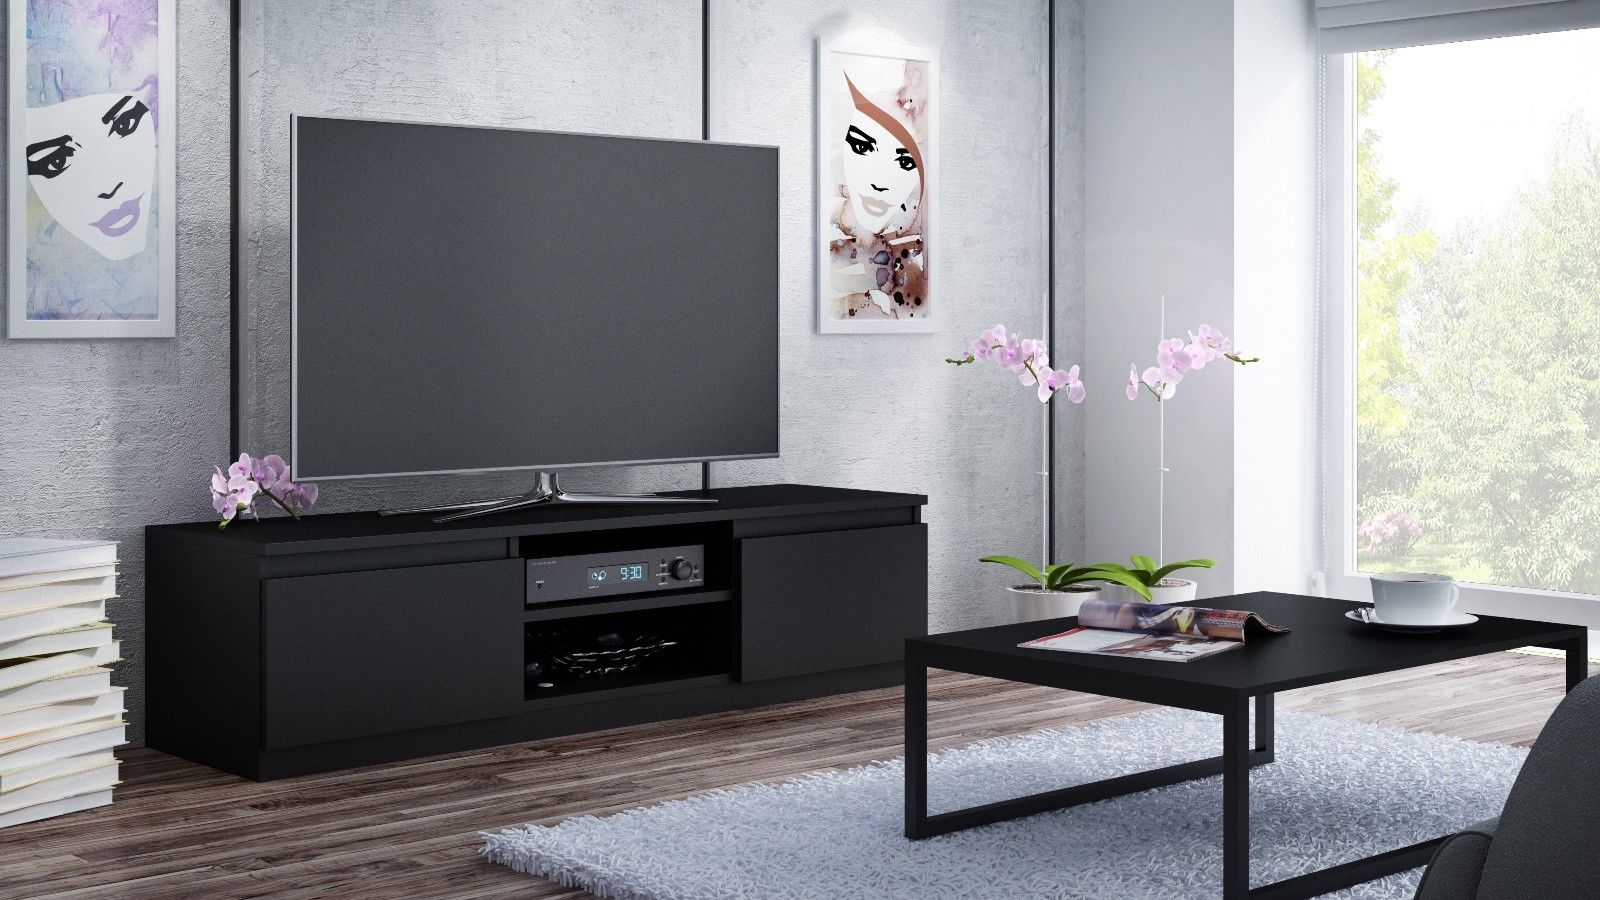 Sleek black entertainment unit